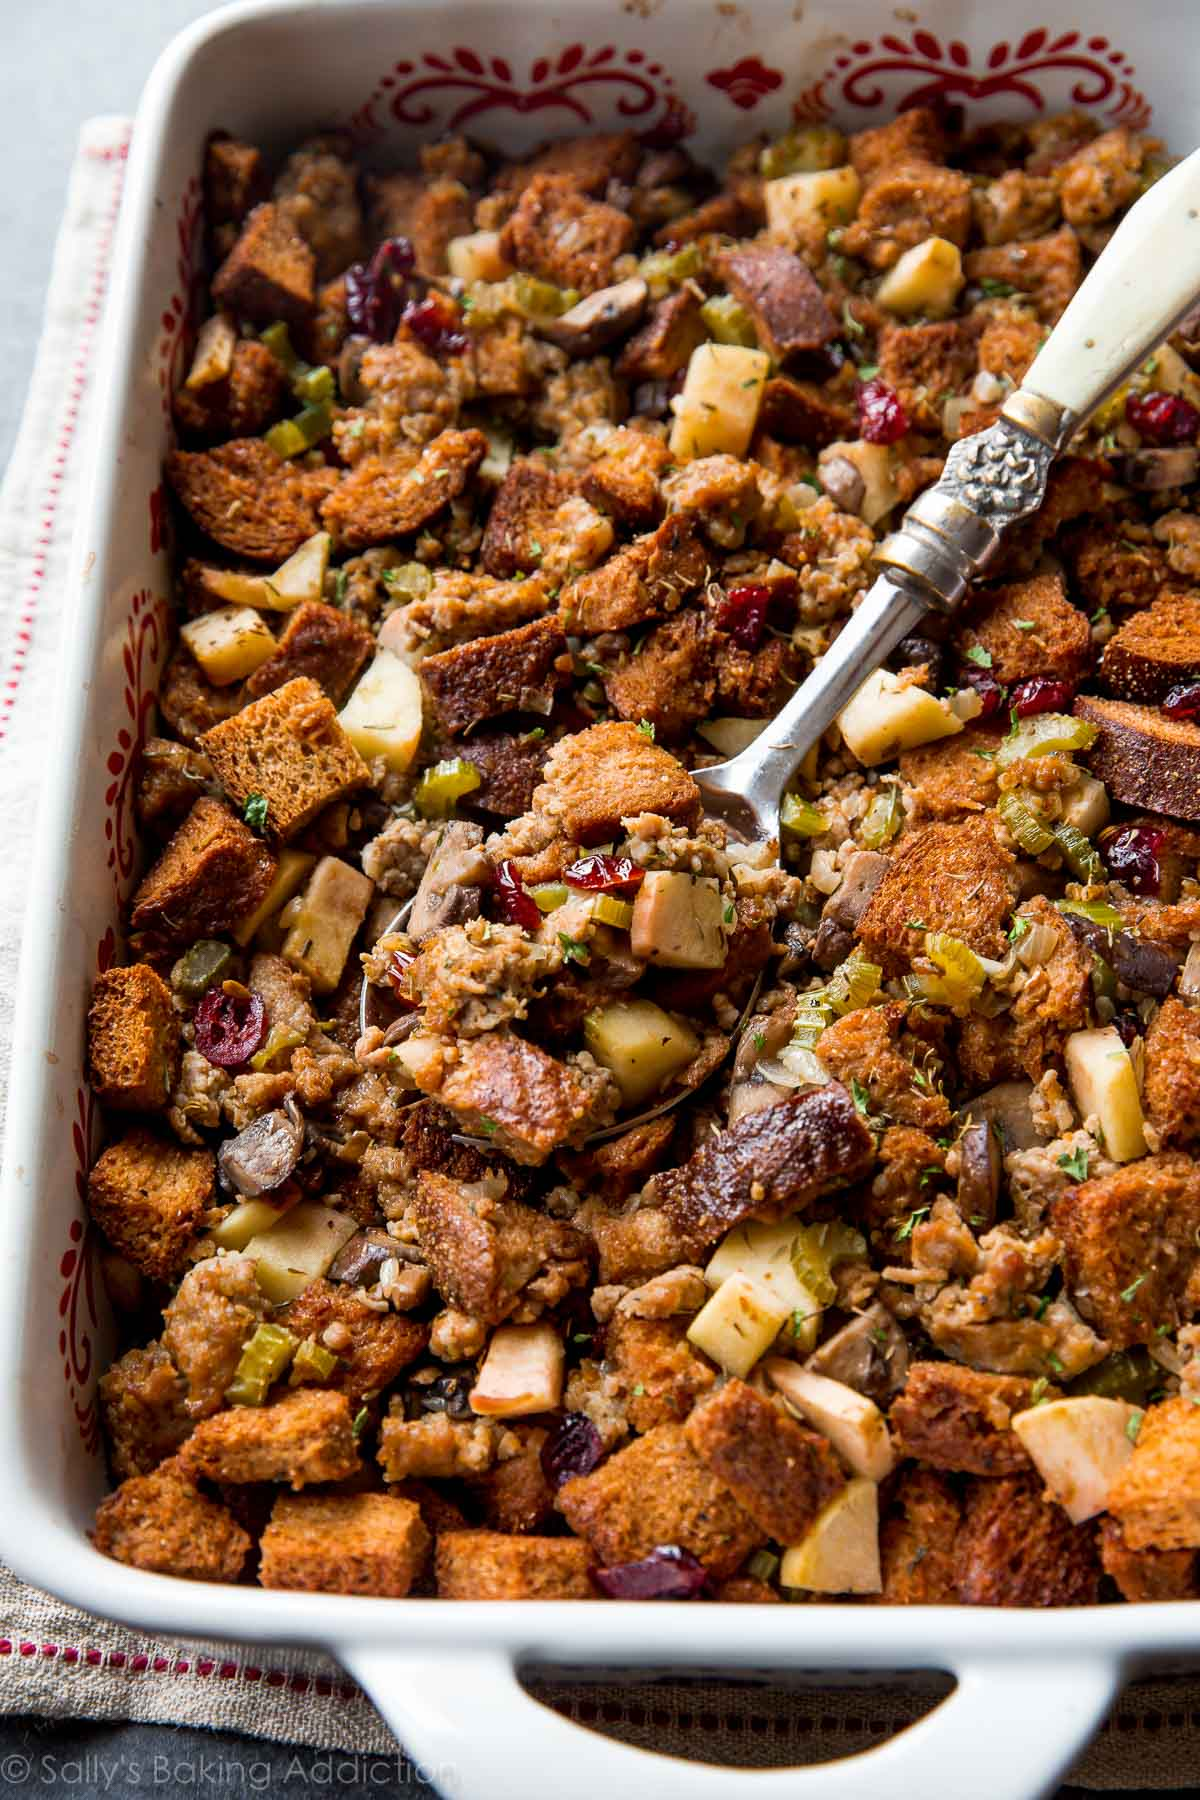 The BEST Thanksgiving dressing recipe! With apples, sausage, savory herbs, mushrooms, and whole grain bread. Recipe on sallysbakingaddiction.com